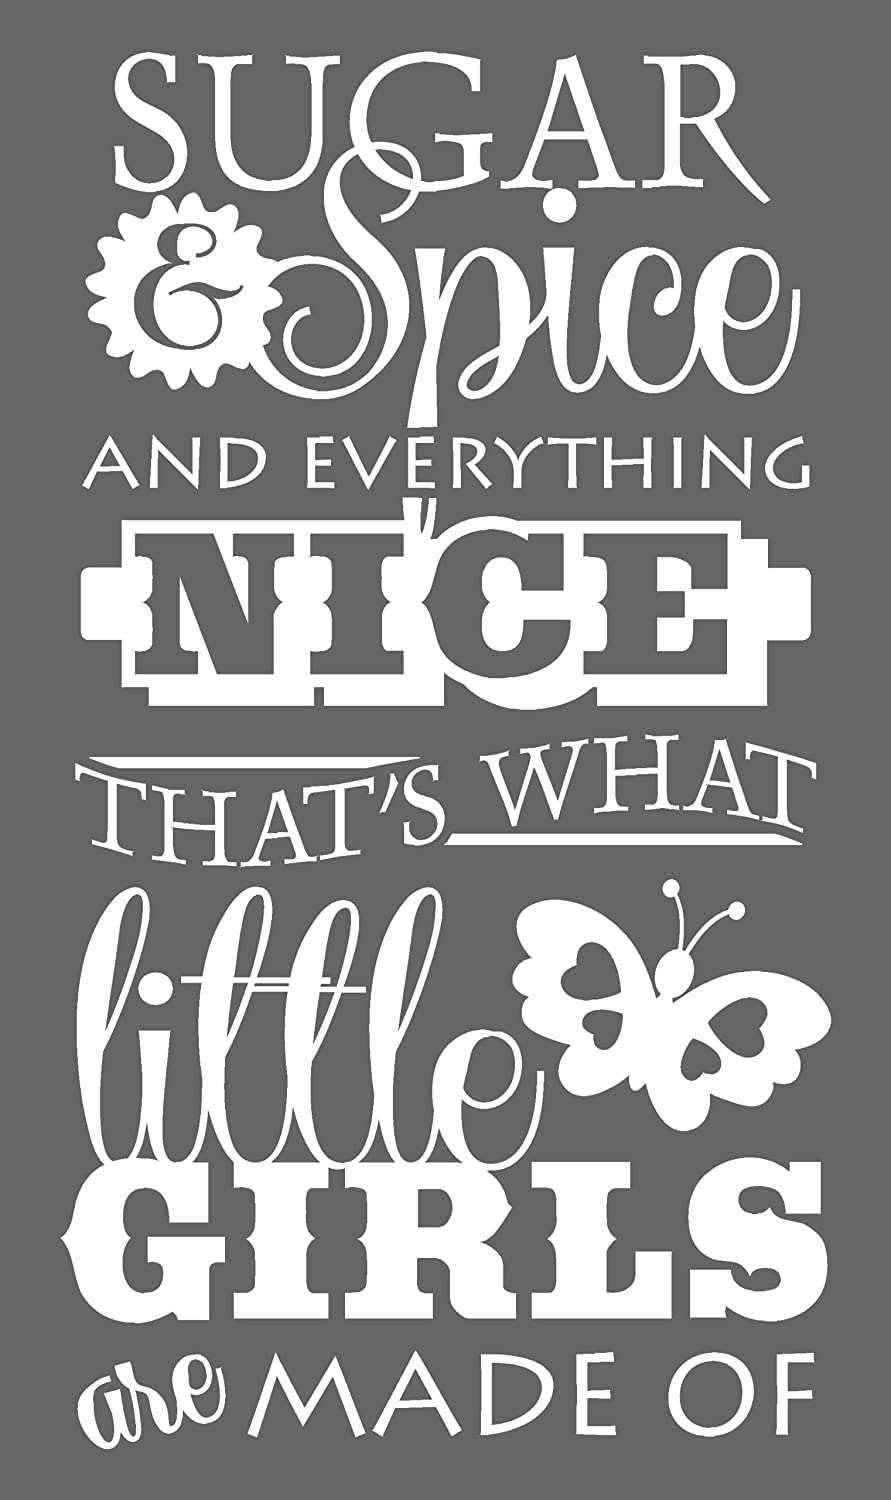 Sugar Spice and Everything Nice Kid Room Decor Wall Art Poster